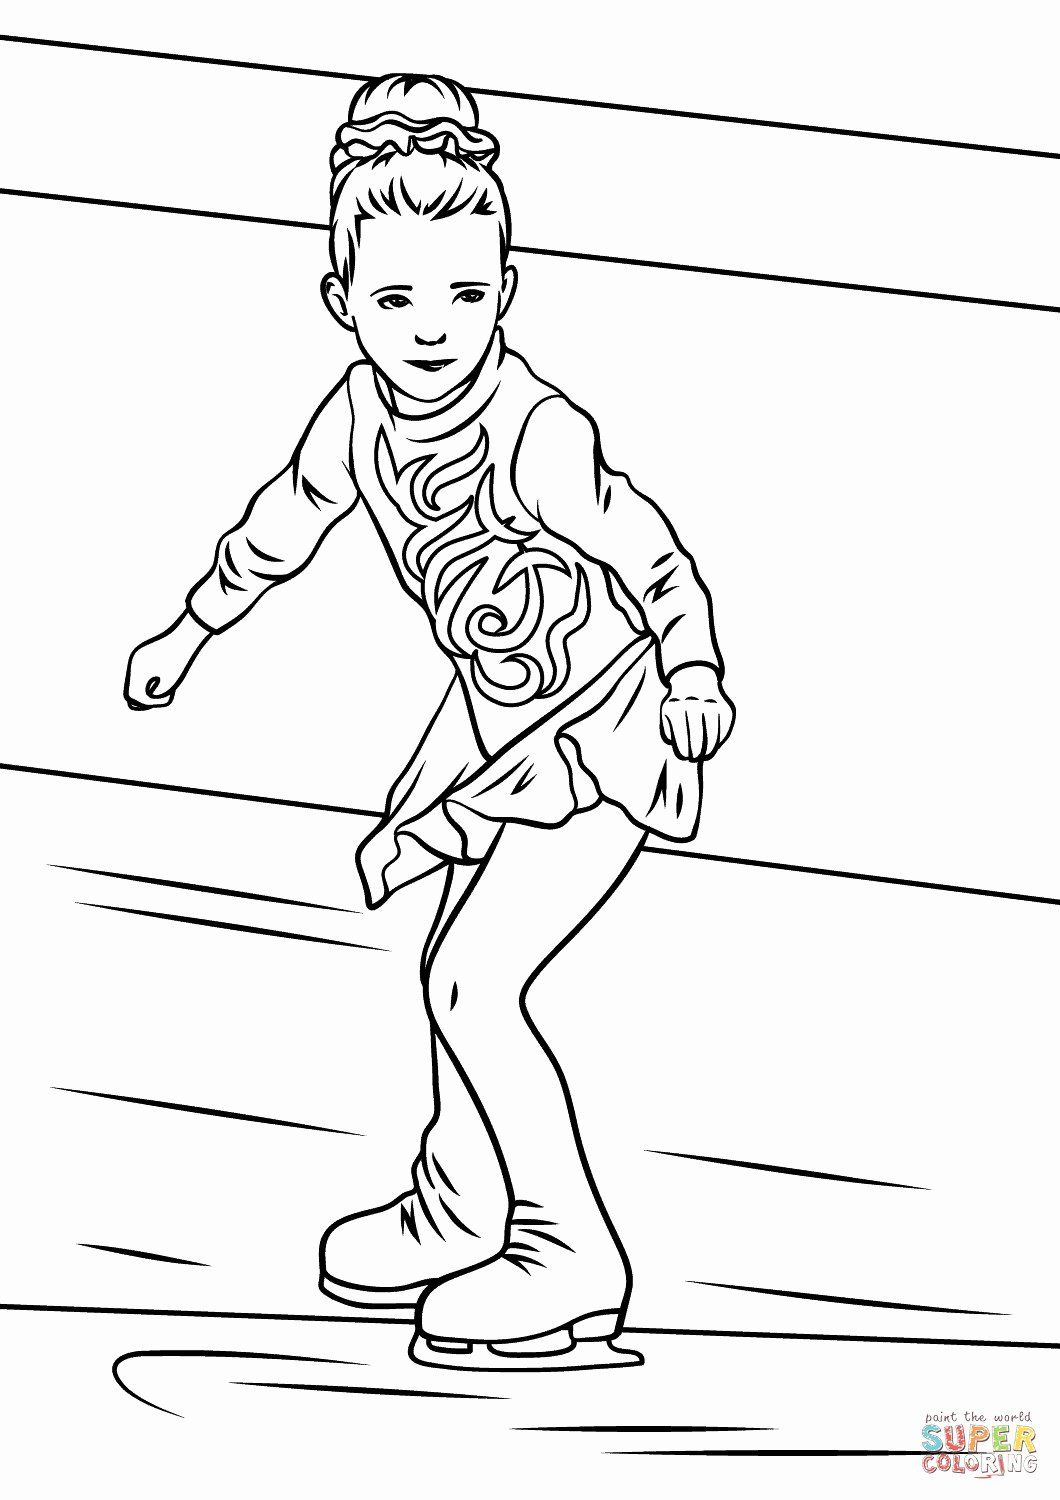 Ice Skate Coloring Page Best Of Ice Skating Drawing At Getdrawings